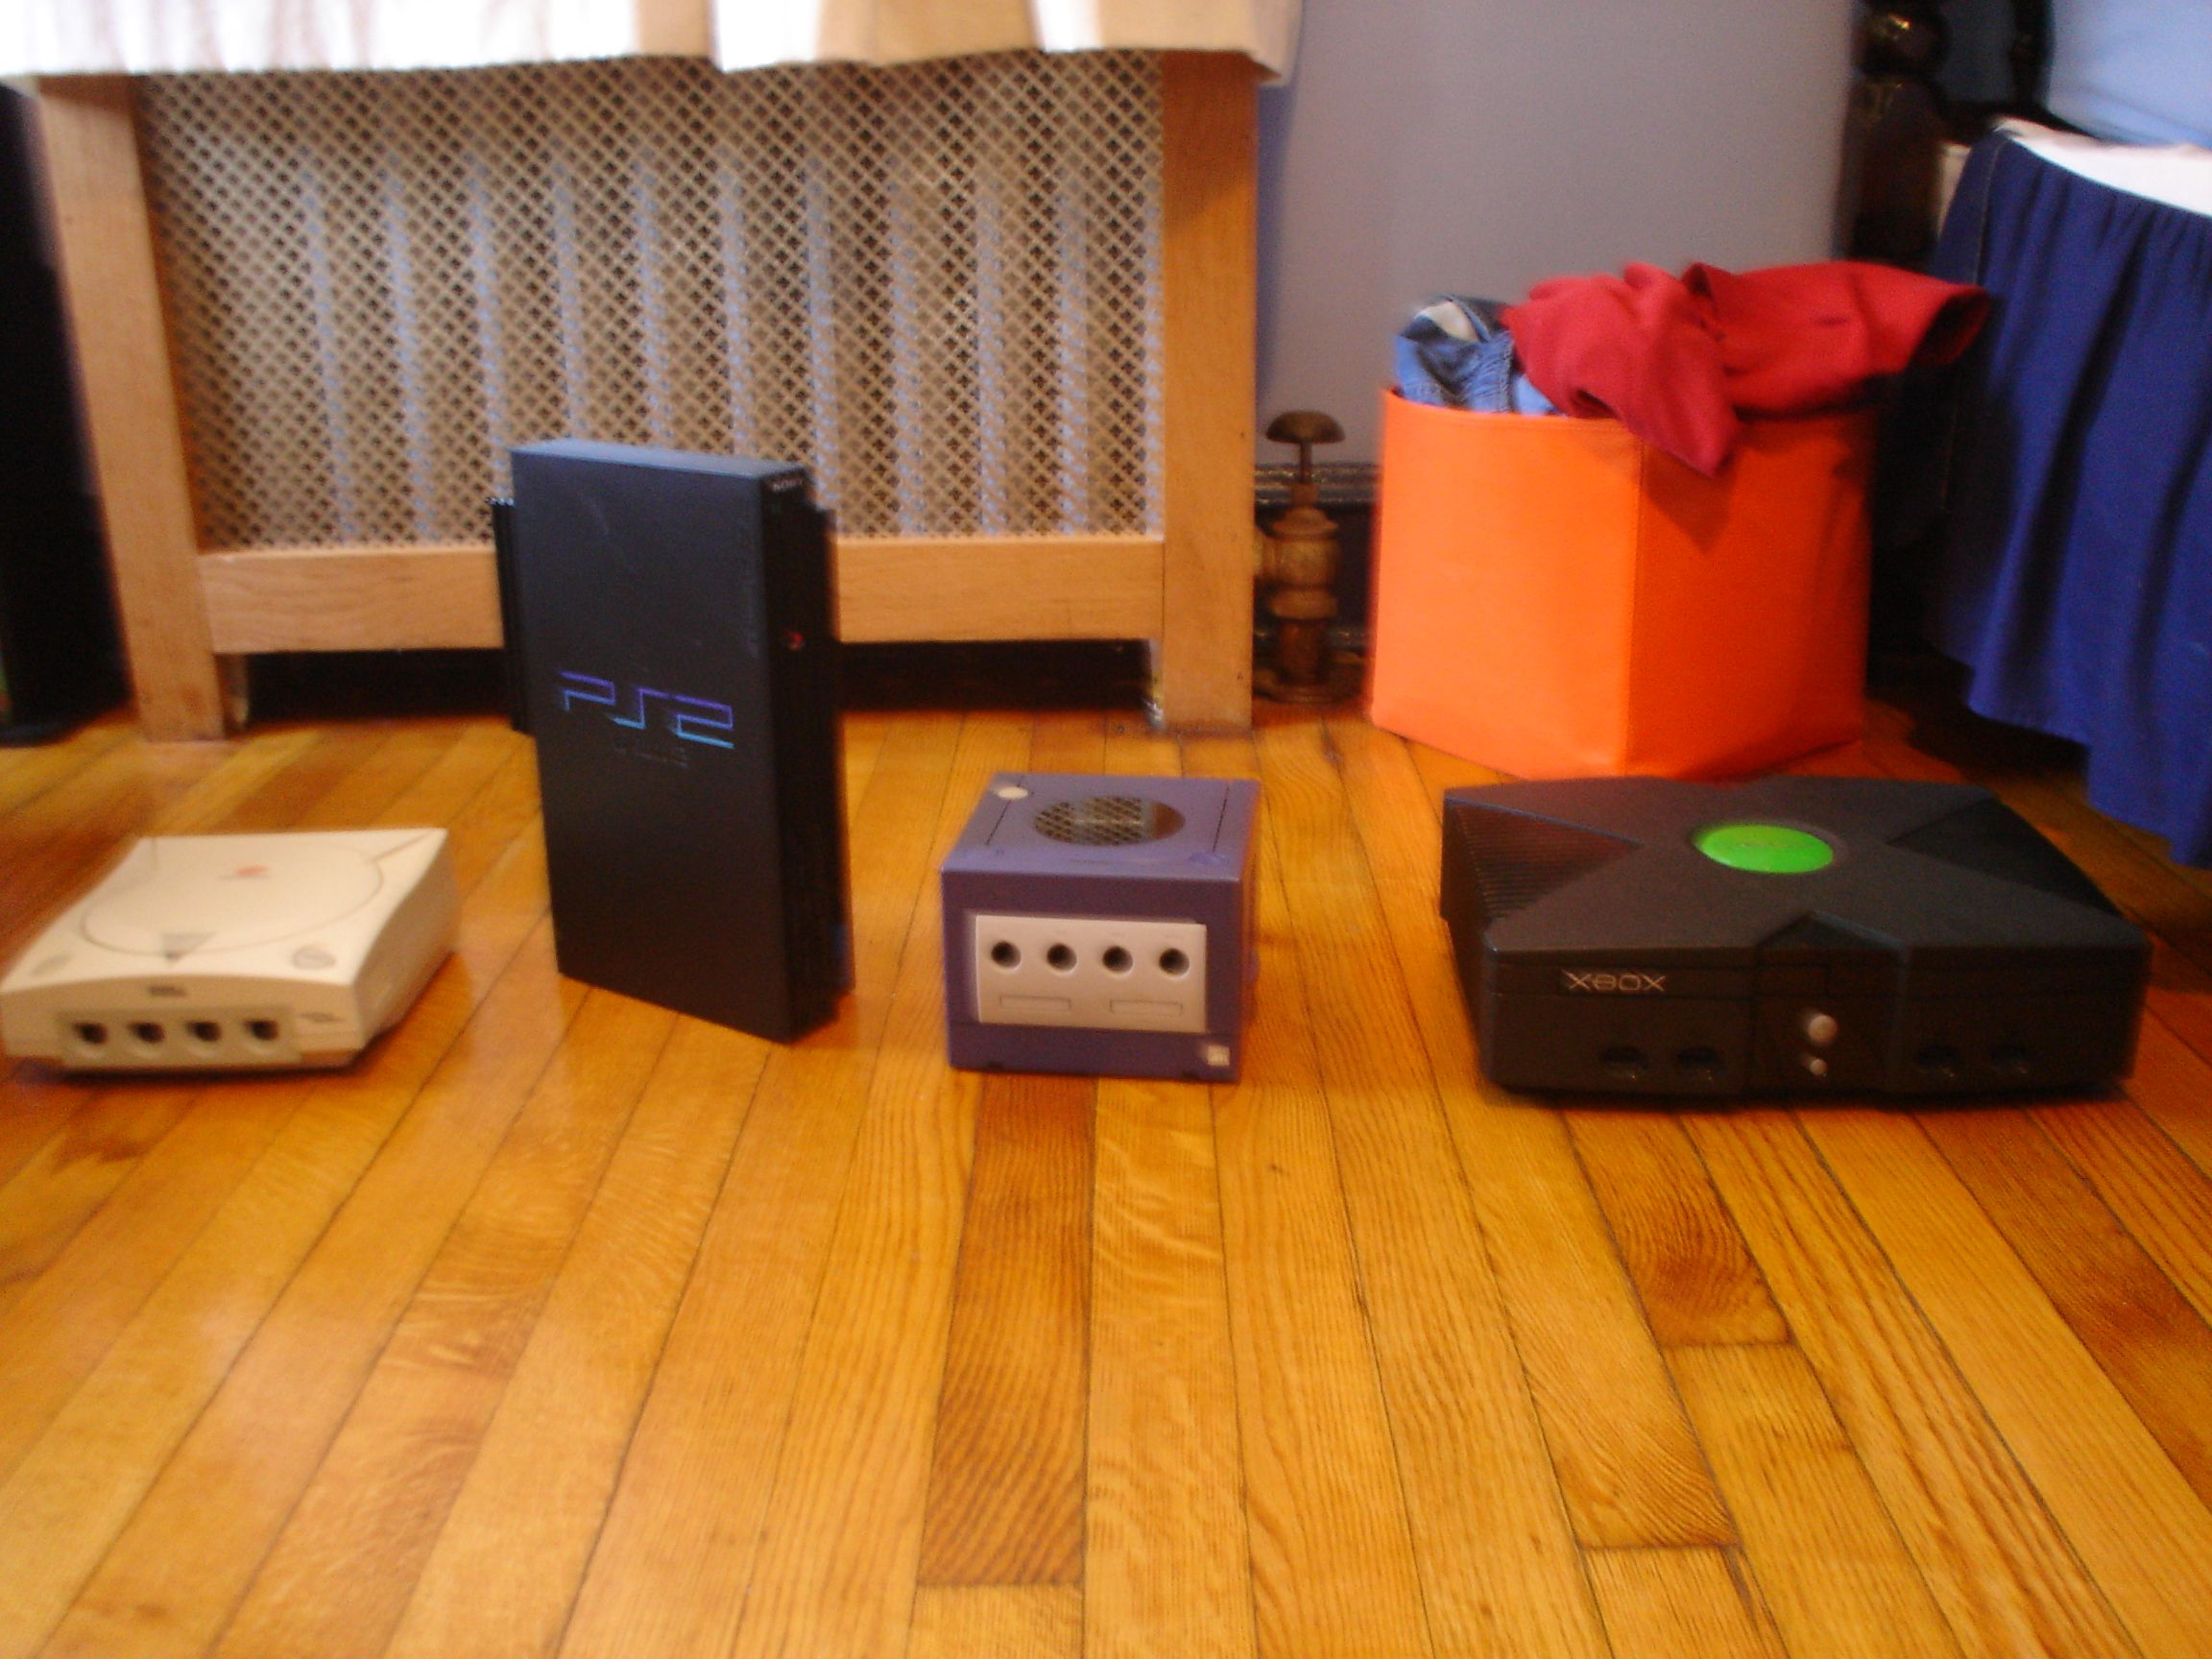 Old School Video Game Consoles Retro video games, Video